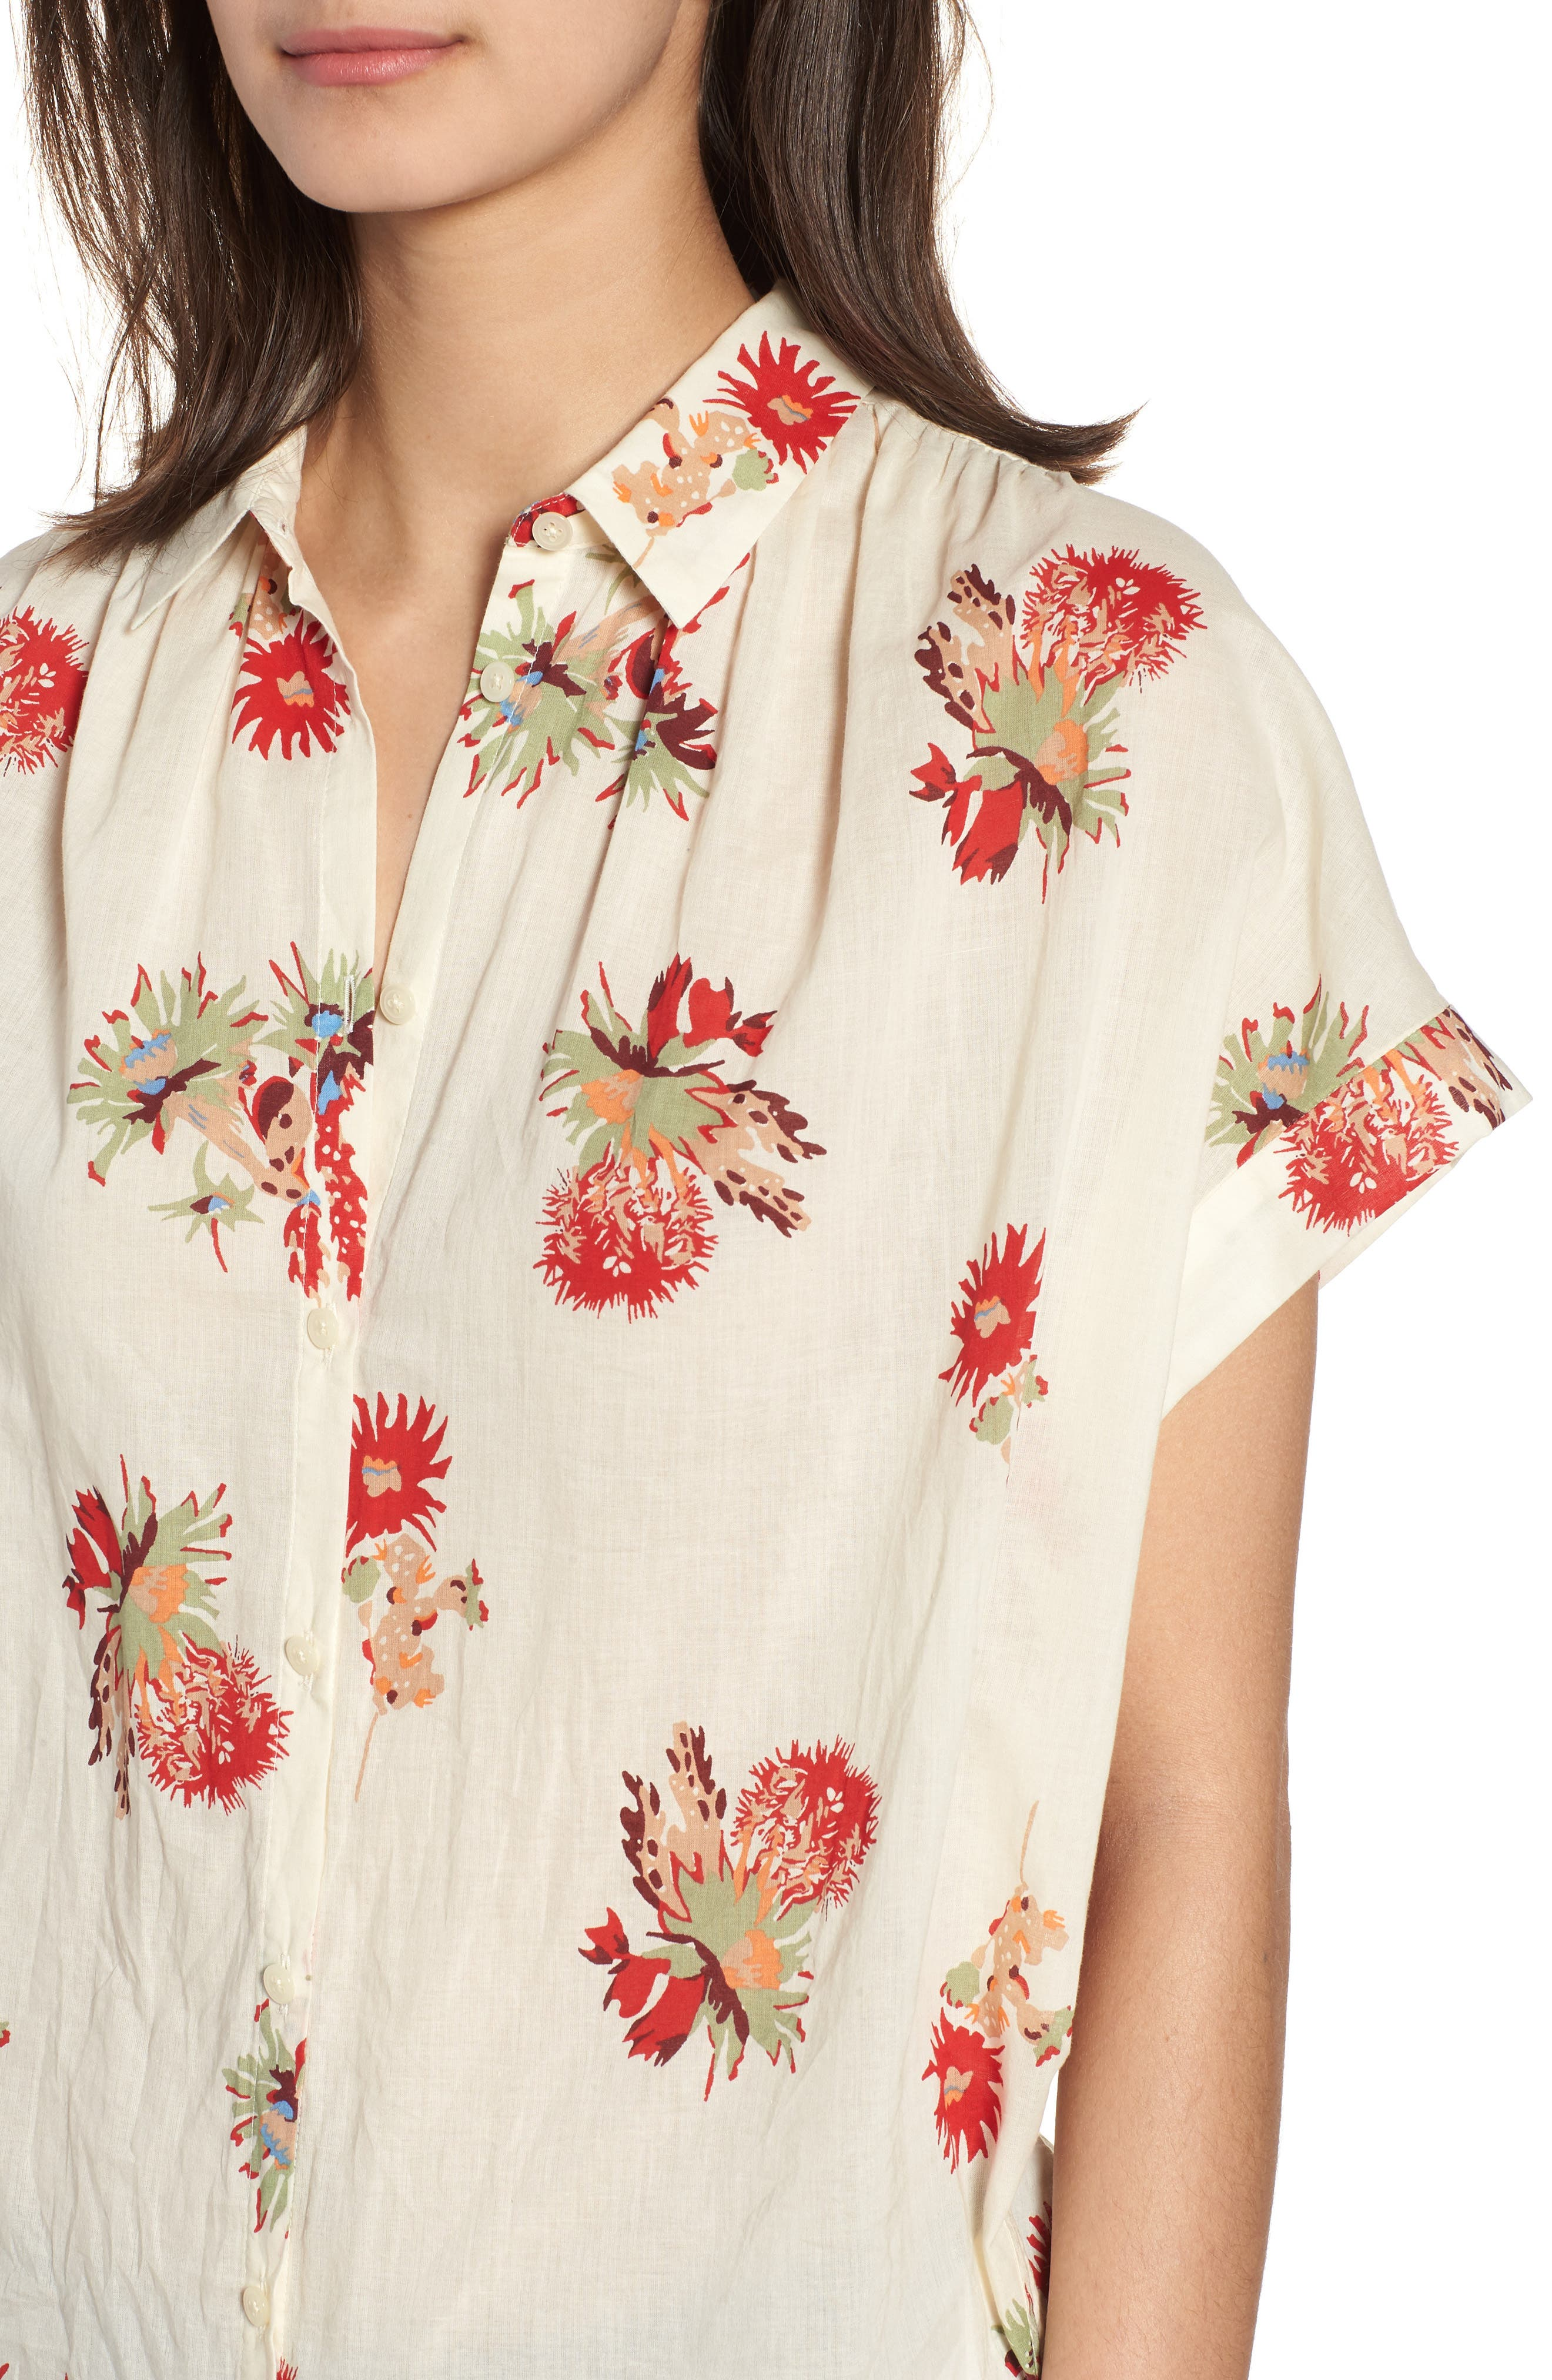 Central Cactus Floral Shirt,                             Alternate thumbnail 4, color,                             100